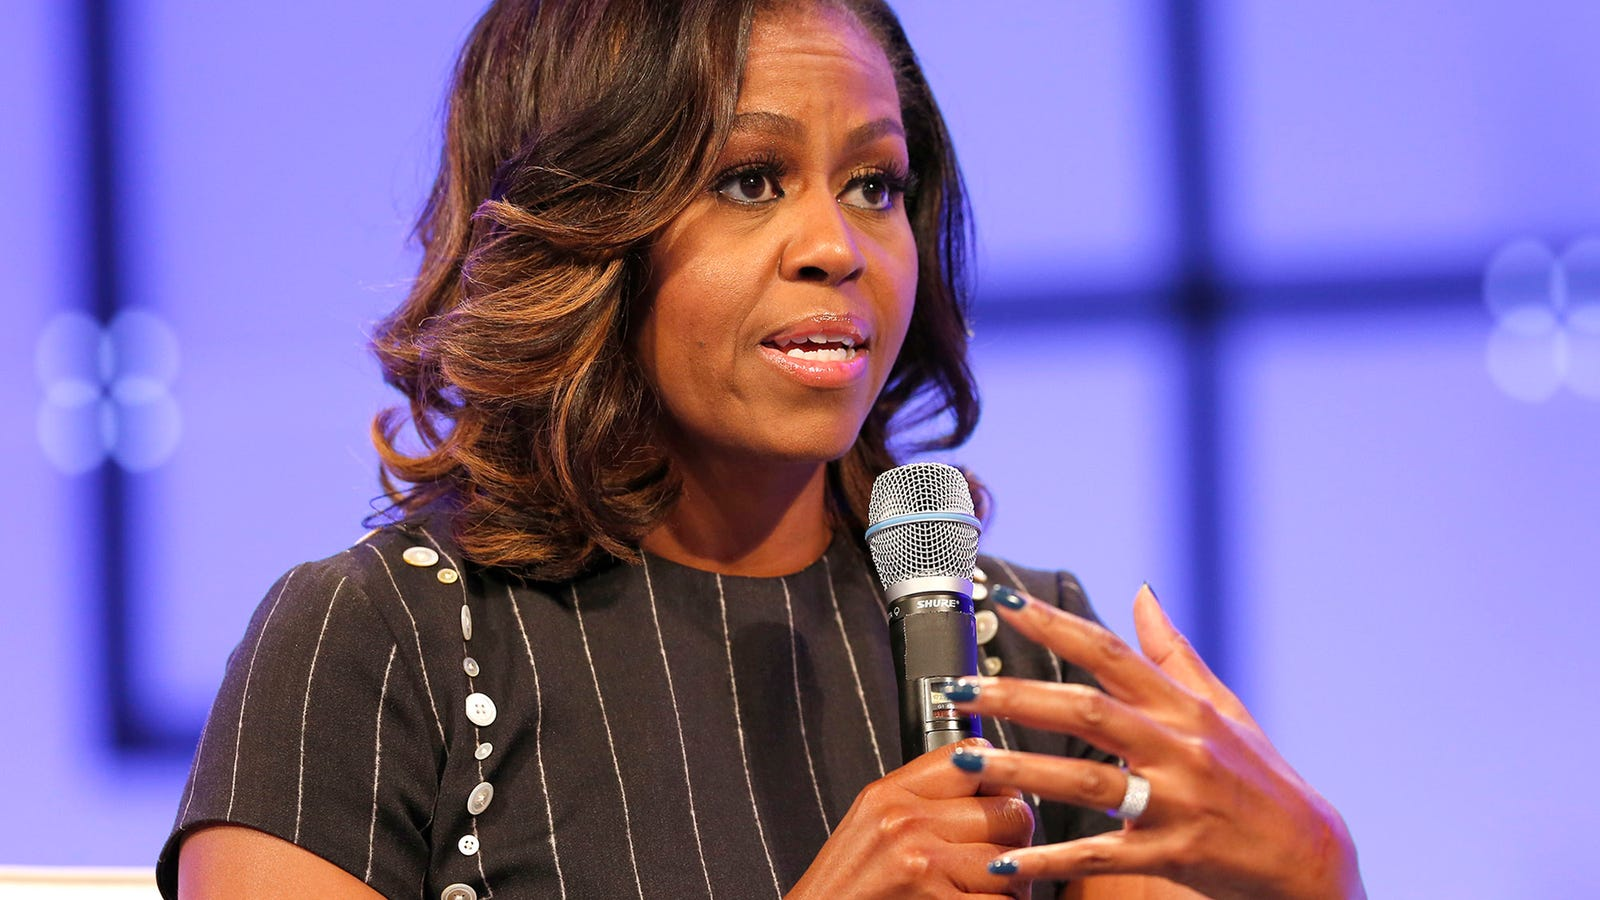 Michelle Obama Admits Barack Had Way Too Much Sperm To Make Natural Conception Possible